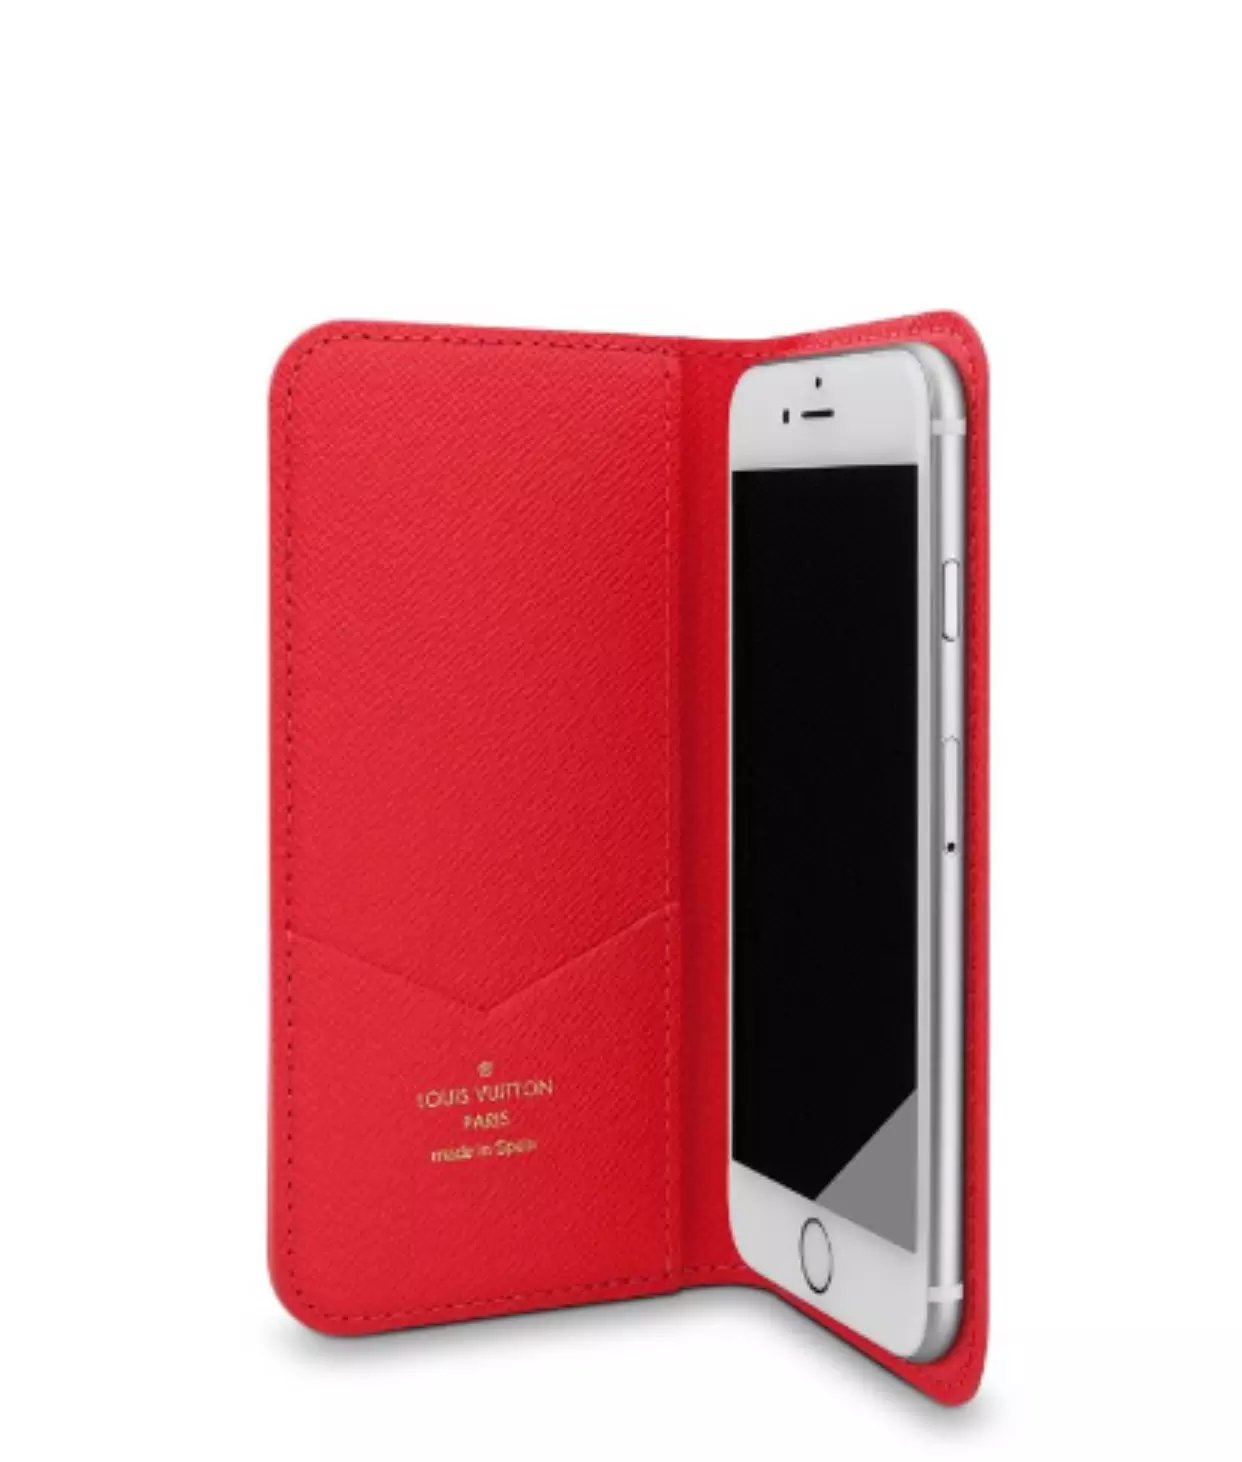 handy hülle iphone schutzhülle für iphone Louis Vuitton iphone7 Plus hülle iphone 7 Plus hülle strass foto hülle dünnste iphone hülle iphone 7 Plus beste hülle handyhüllen 7lbst bedrucken iphone abdeckung